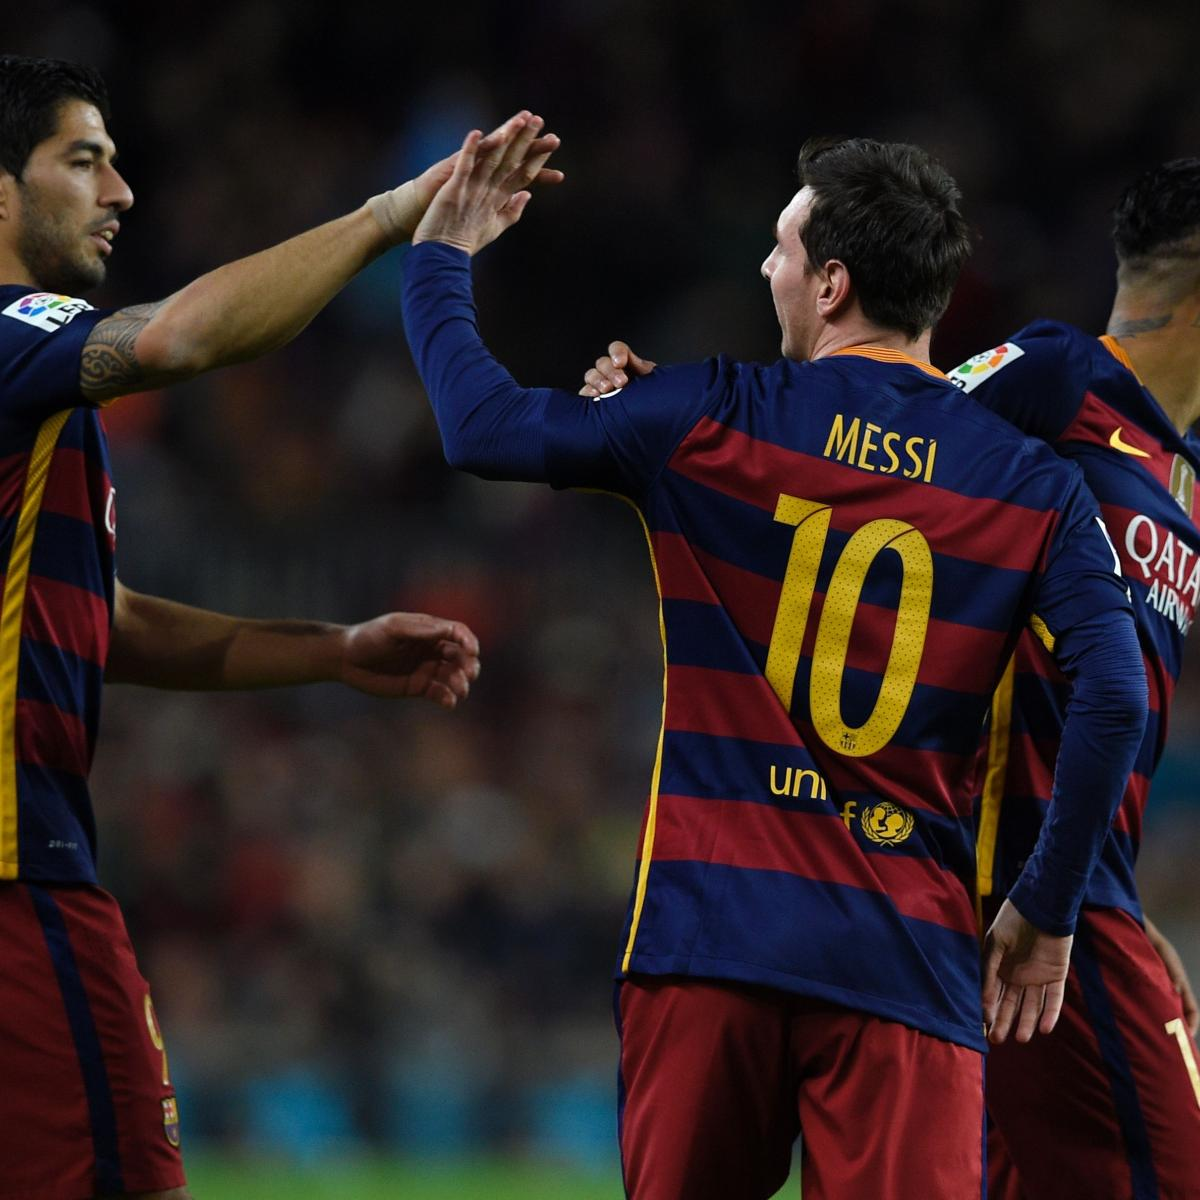 Barcelona Vs Celta Vigo In Youtube: Barcelona Vs. Celta Vigo: Live Score, Highlights From La